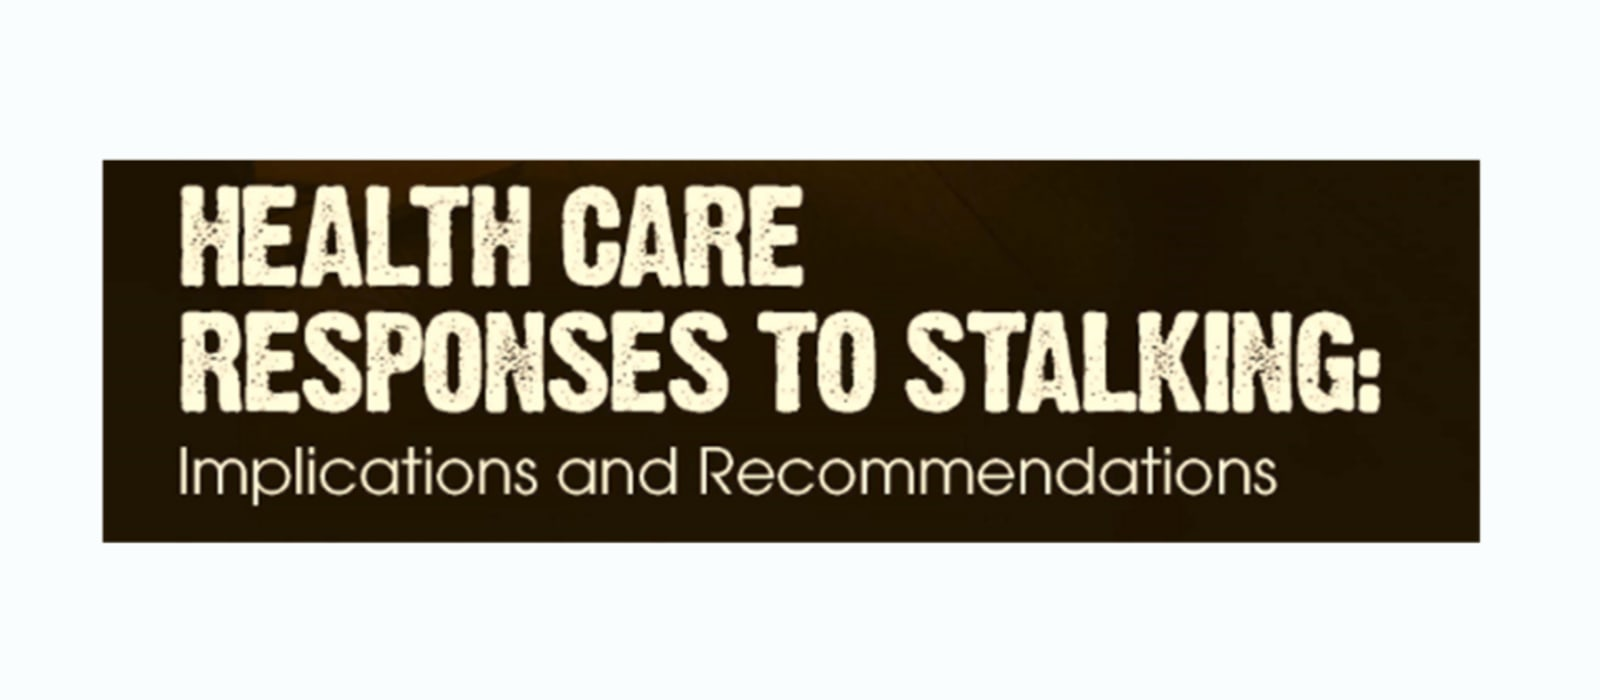 Health Care Responses to Stalking: Implications and Recommendations